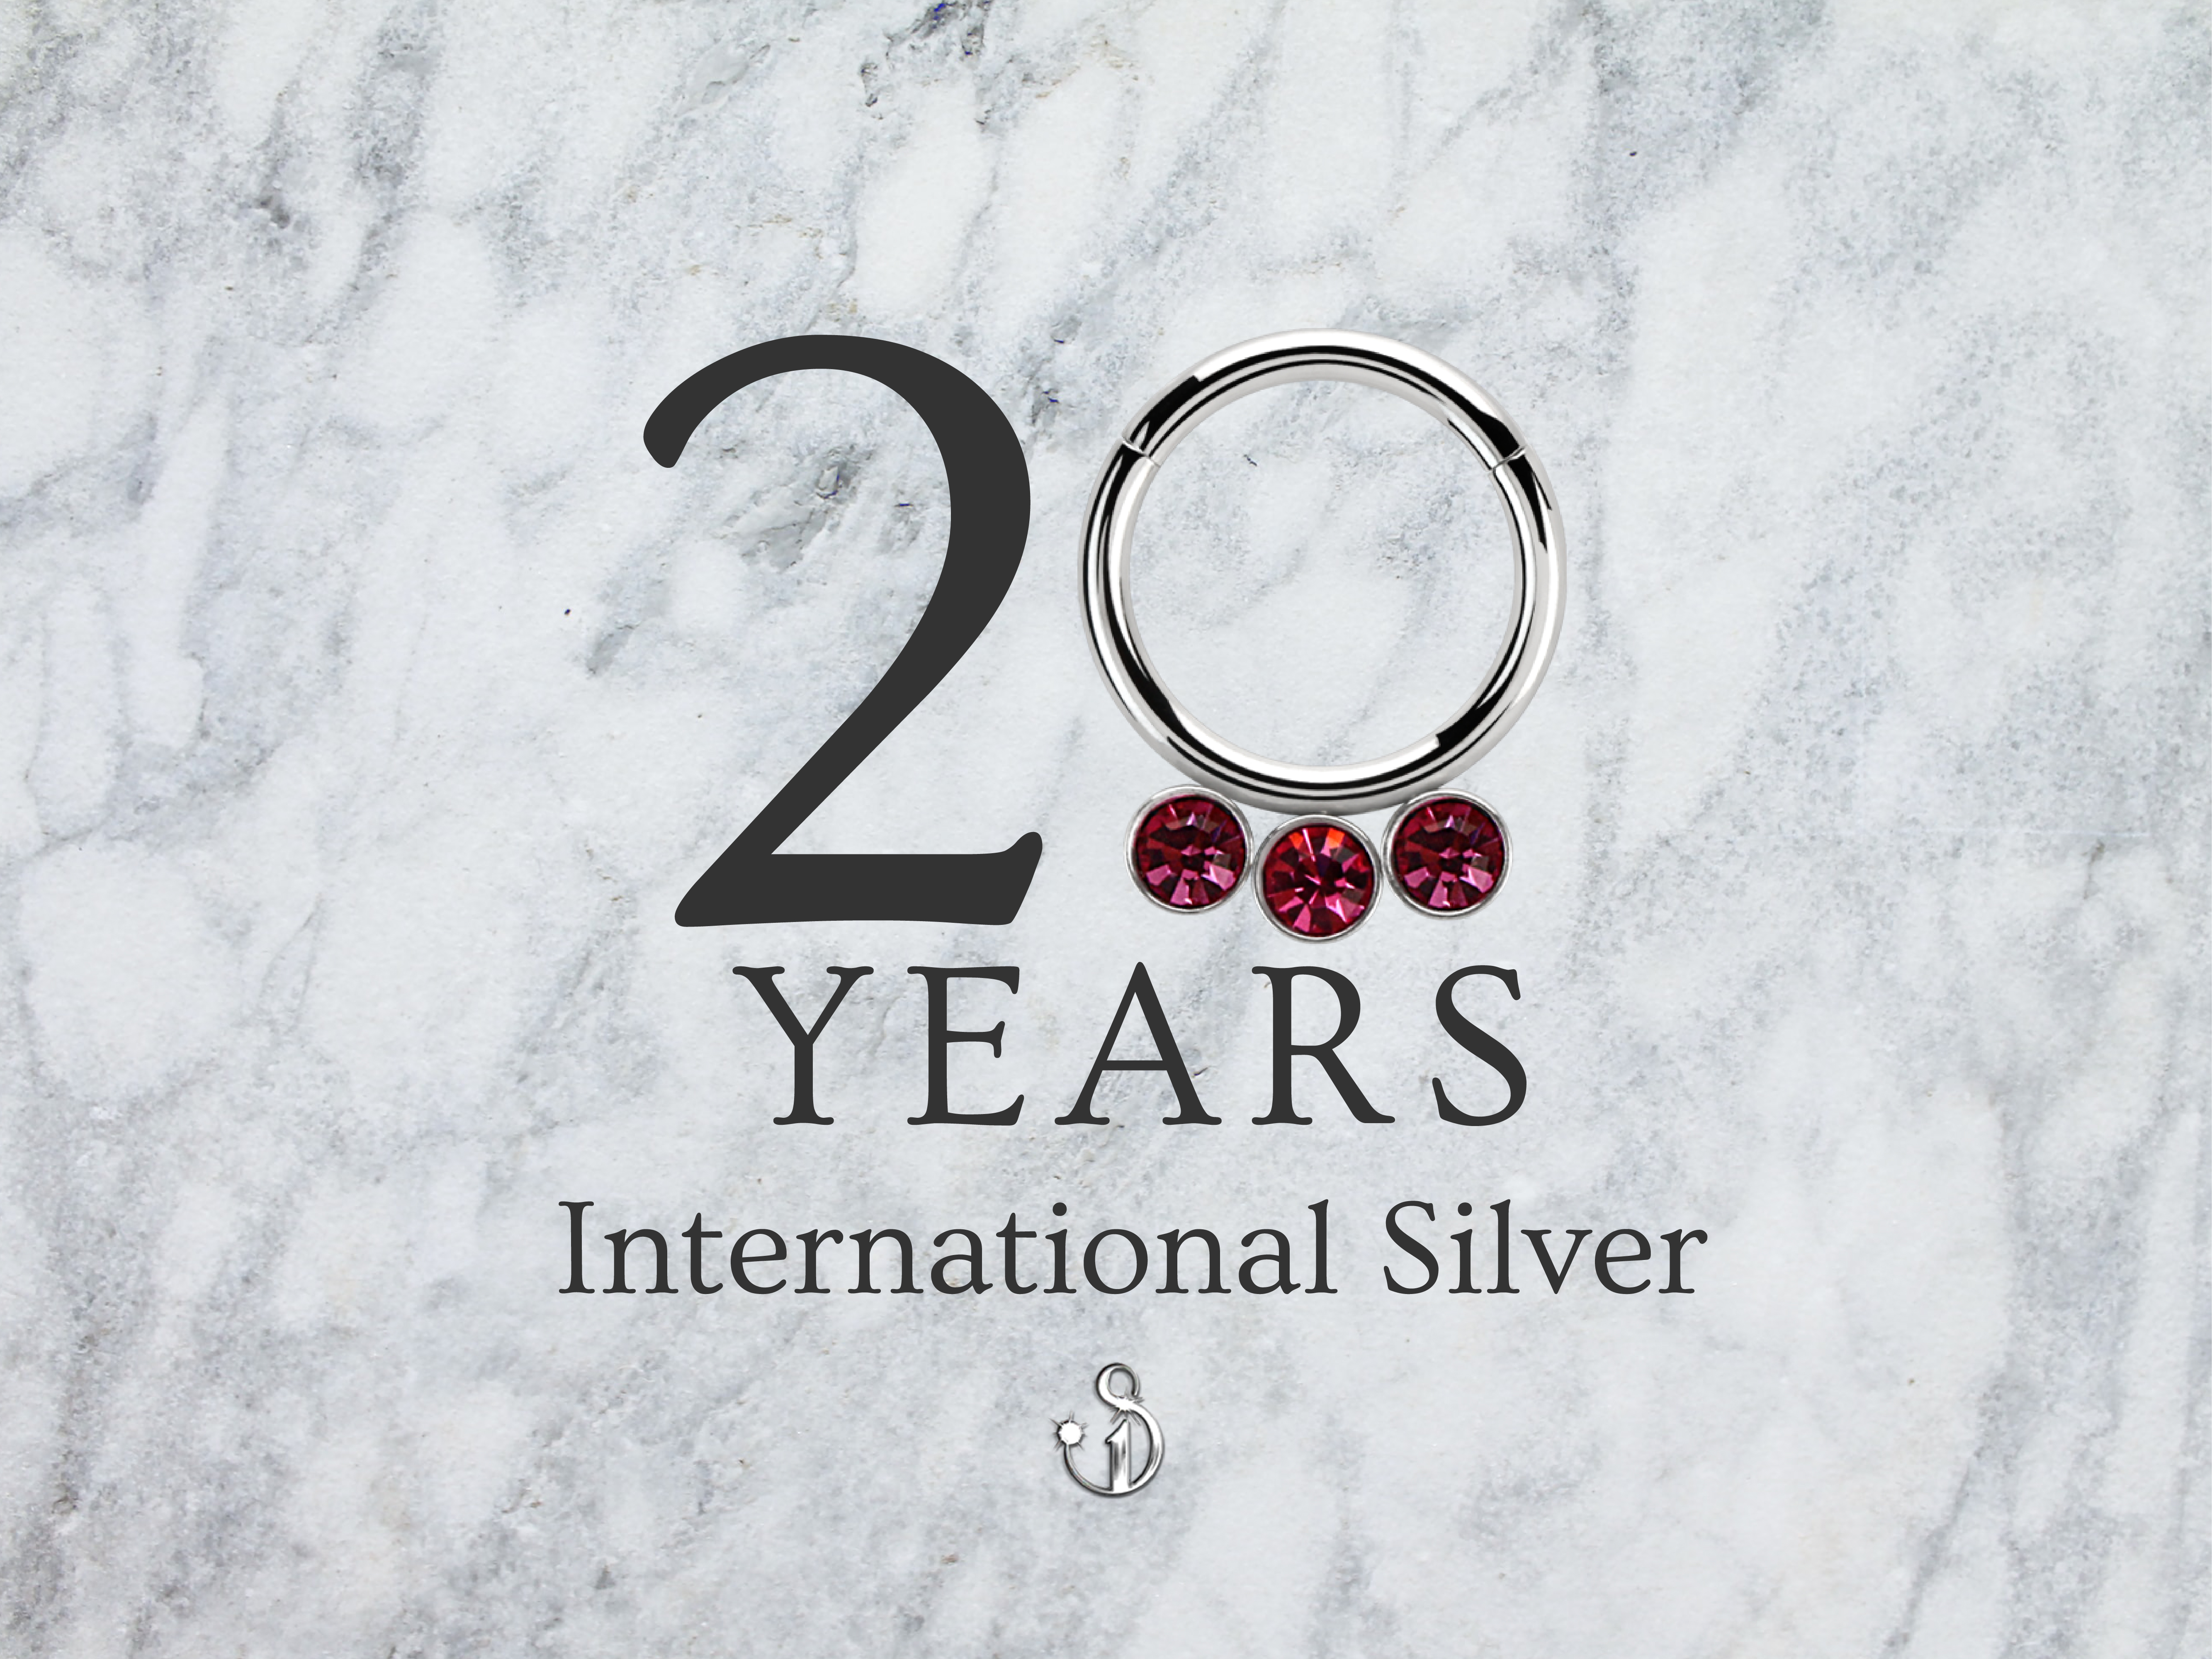 International Silver Inc. Celebrates 20 Years in the Wholesale Body Jewelry Industry